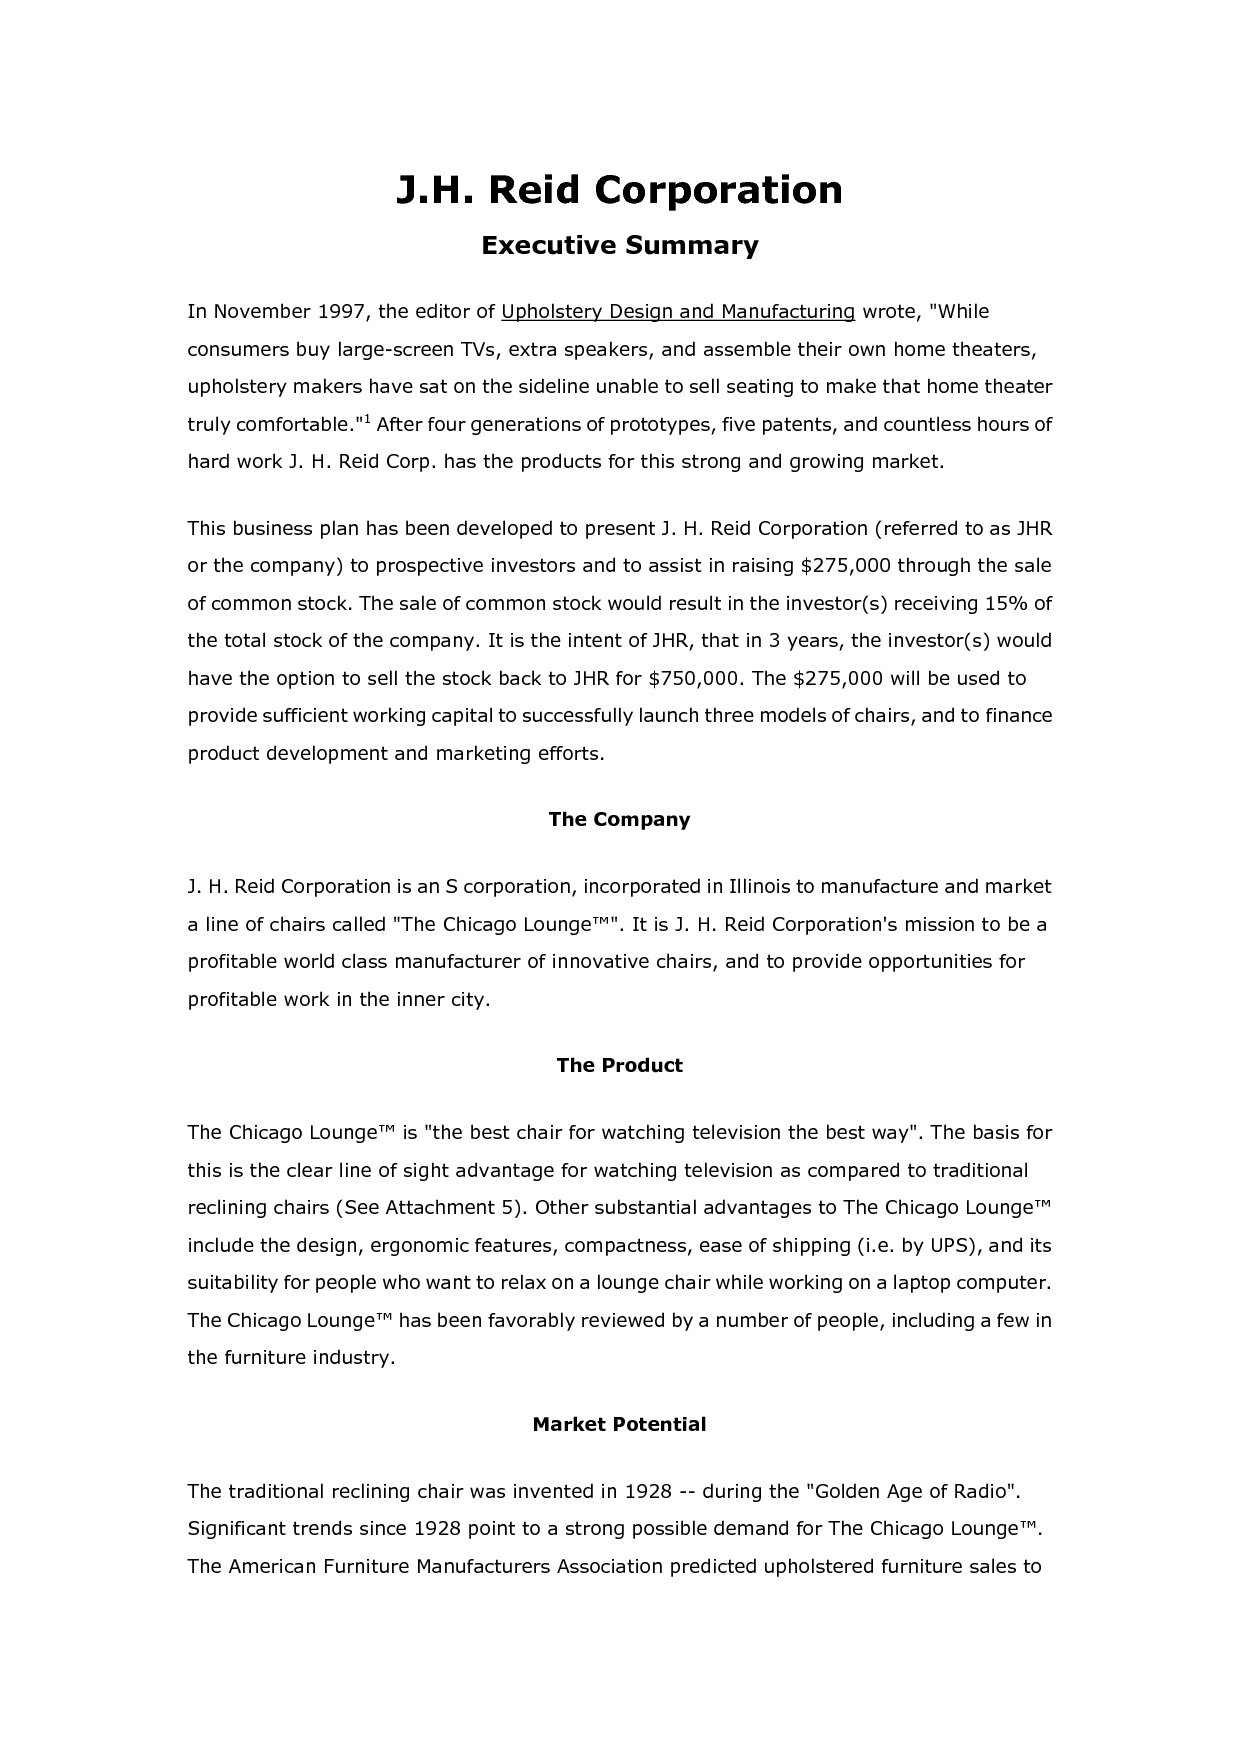 proposal essay examples cover letter how to write a proposal essay  sample proposal essay examples of a proposal essay apa example examples of a proposal essayproposal essays